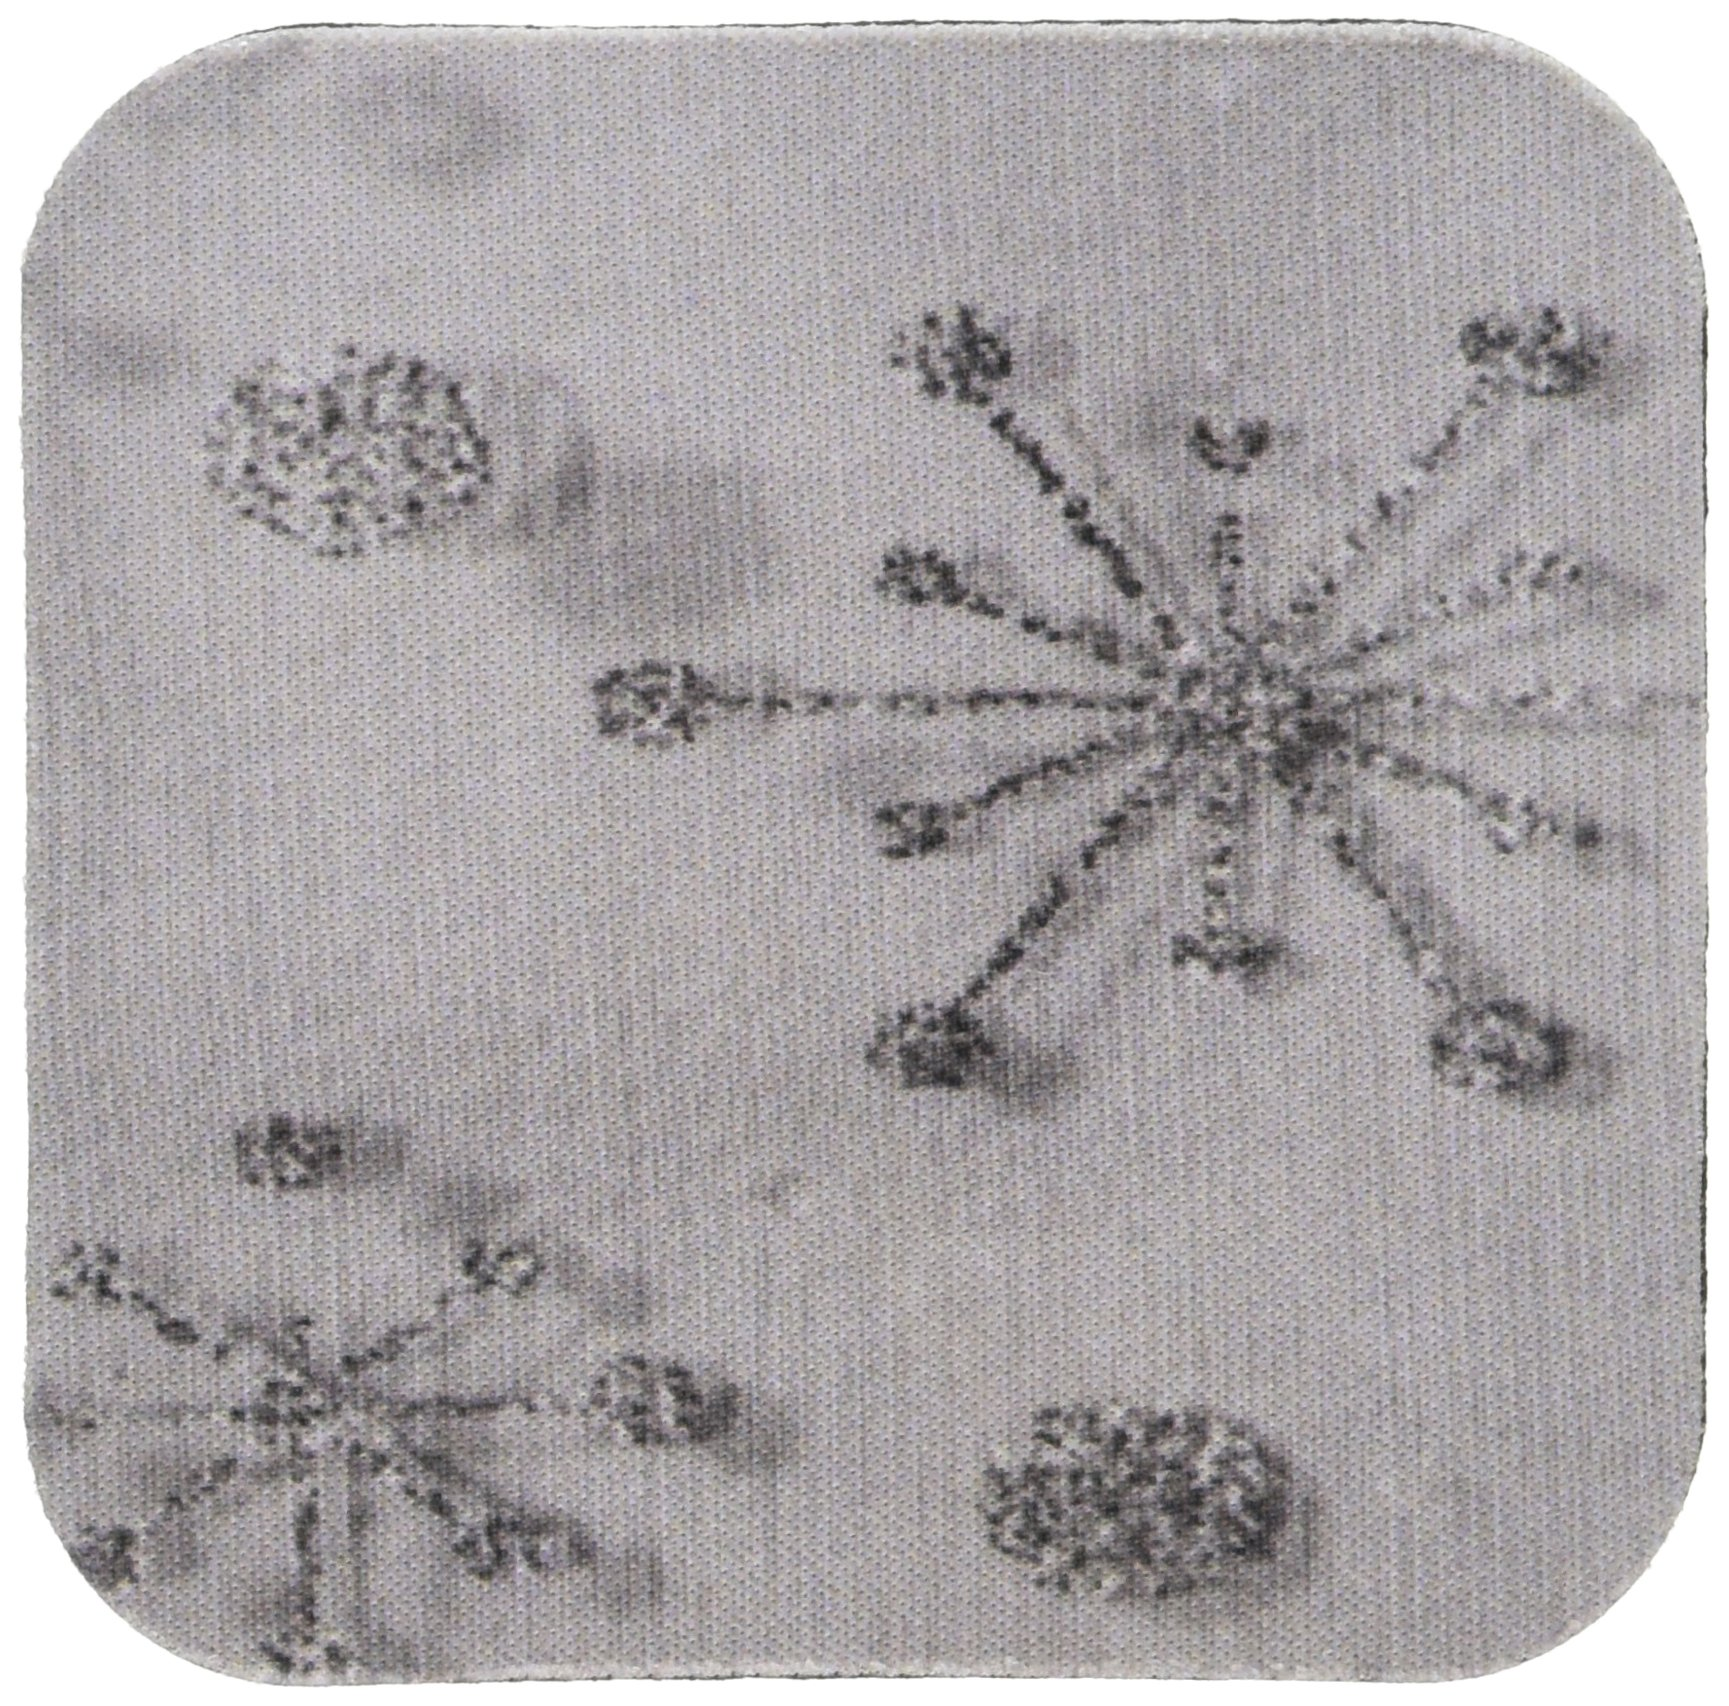 3dRose Silver Glitter Effect Sparkle Snowflakes in Fabric Photograph - Soft Coasters, Set of 4 (CST_213542_1)